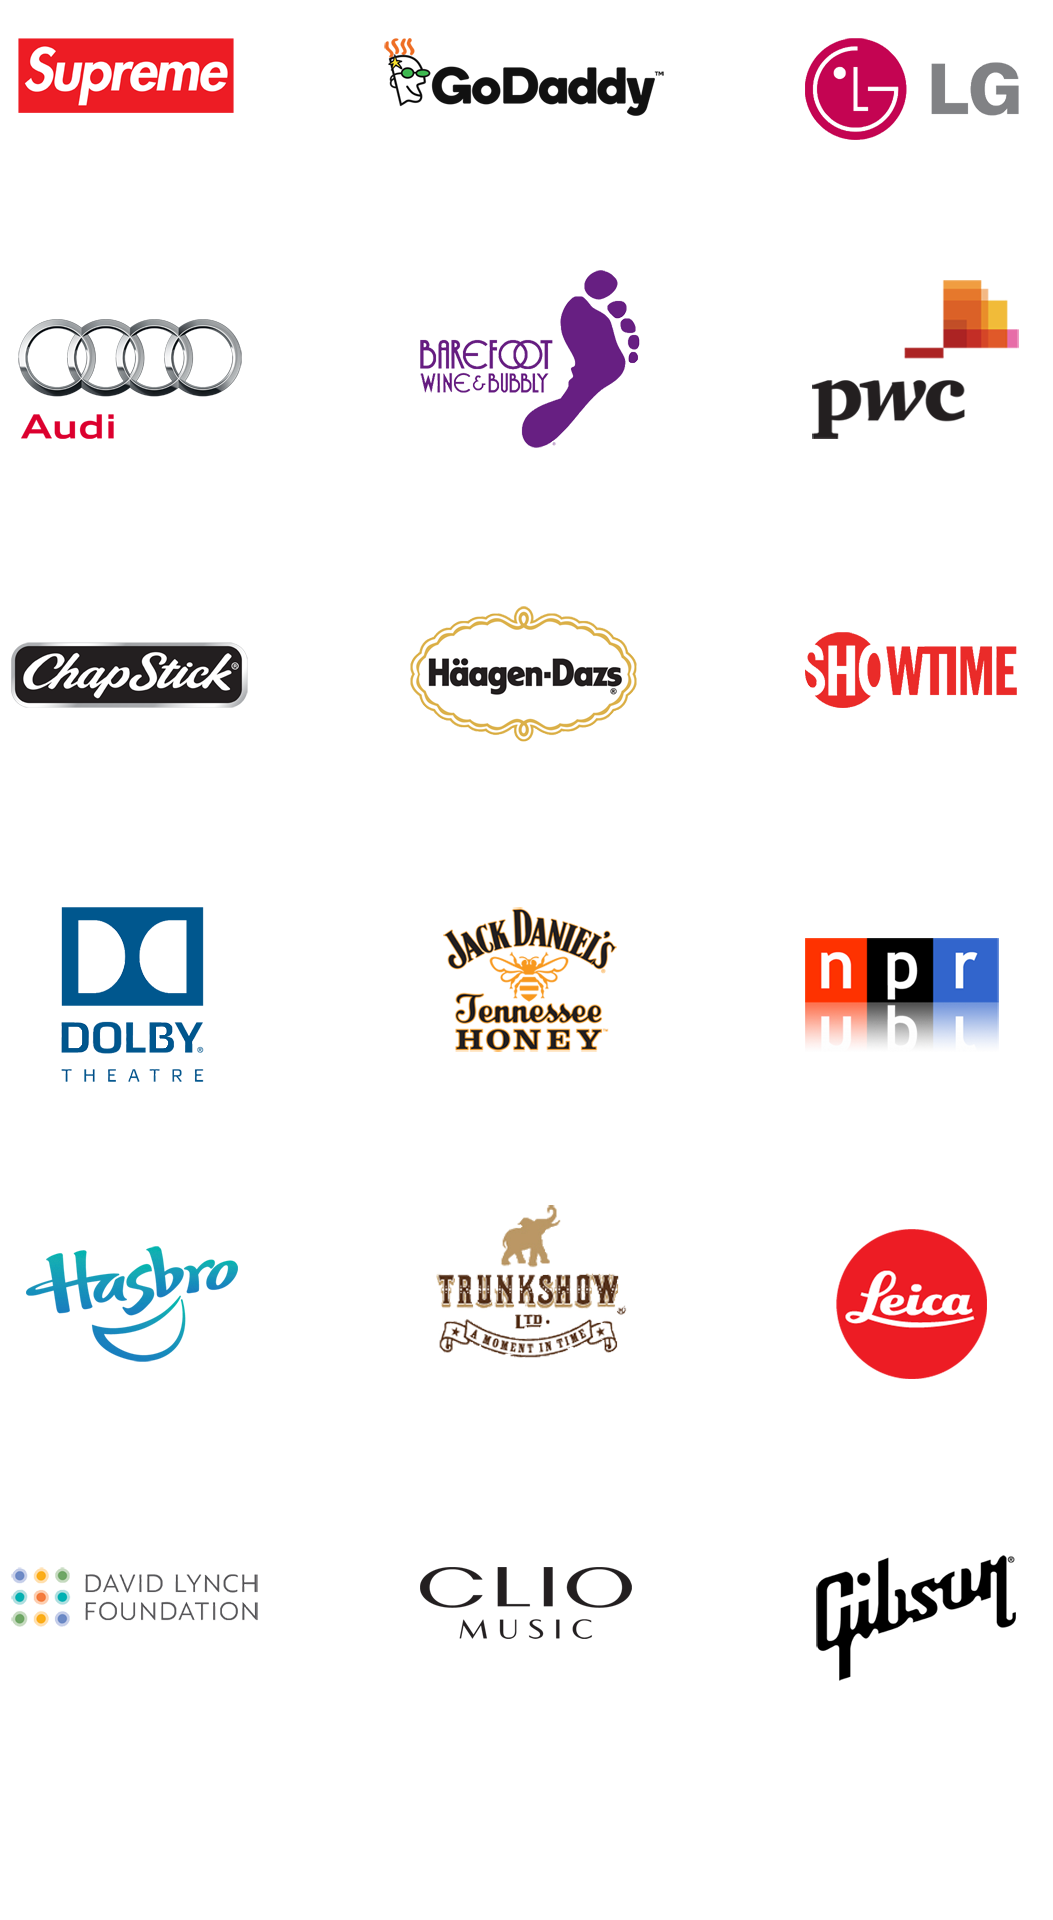 Boss Sounds client logos